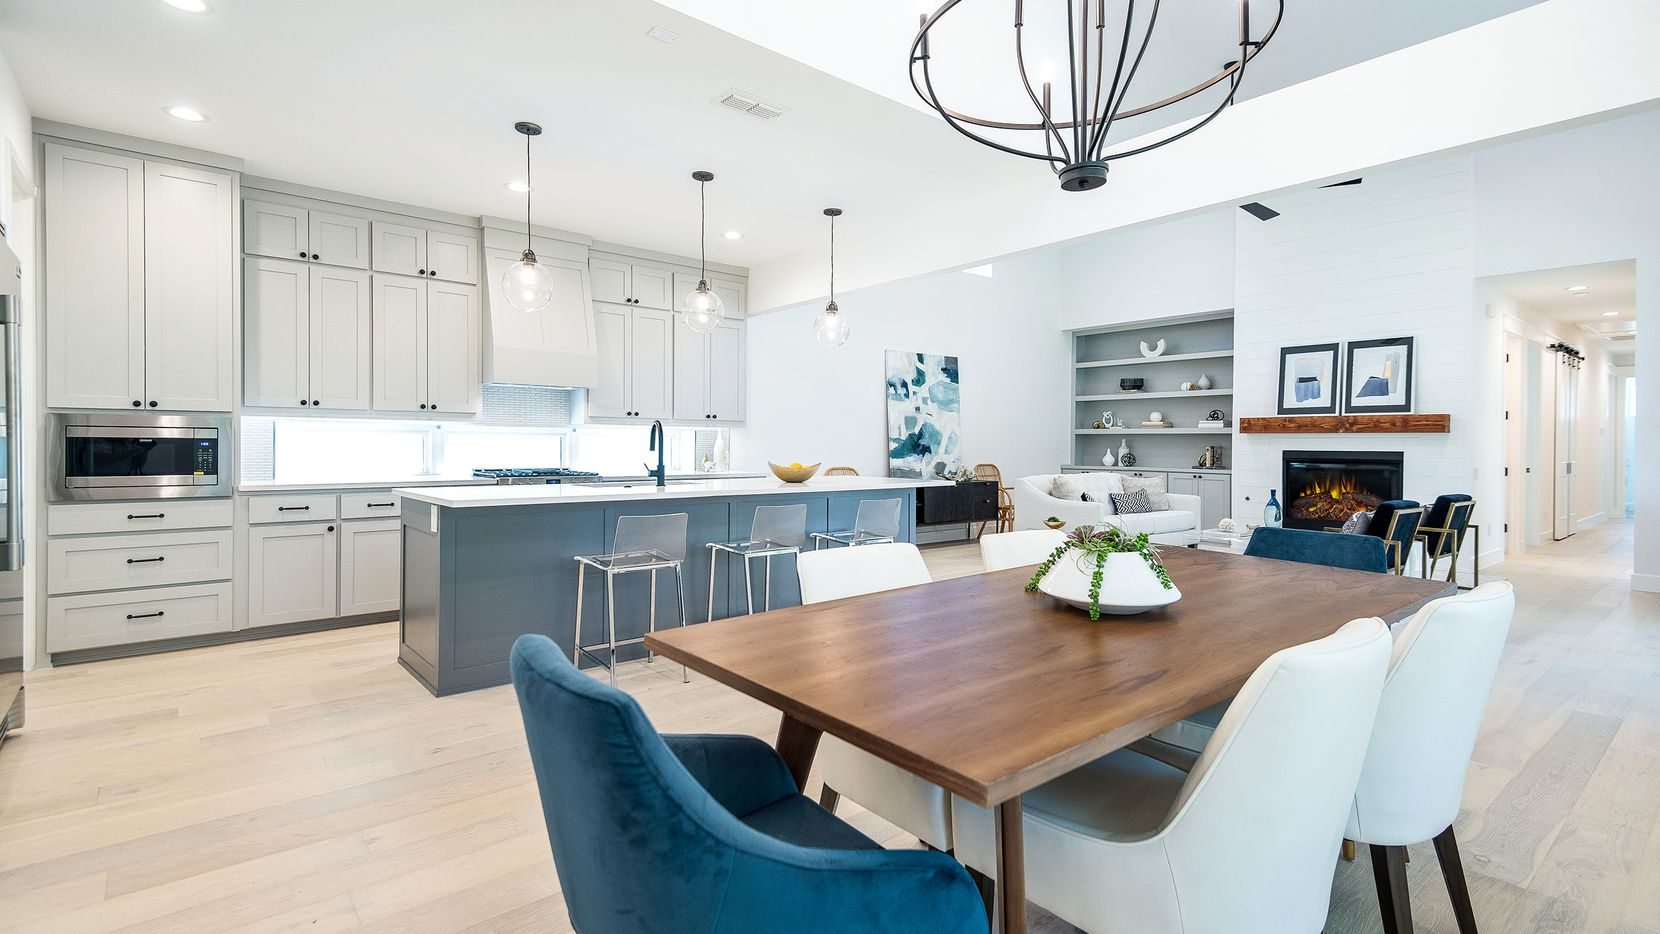 Residences built by Hoffmann Homes at the Abode @ White Rock community in East Dallas include custom cabinets, hardwood flooring and quartz countertops.